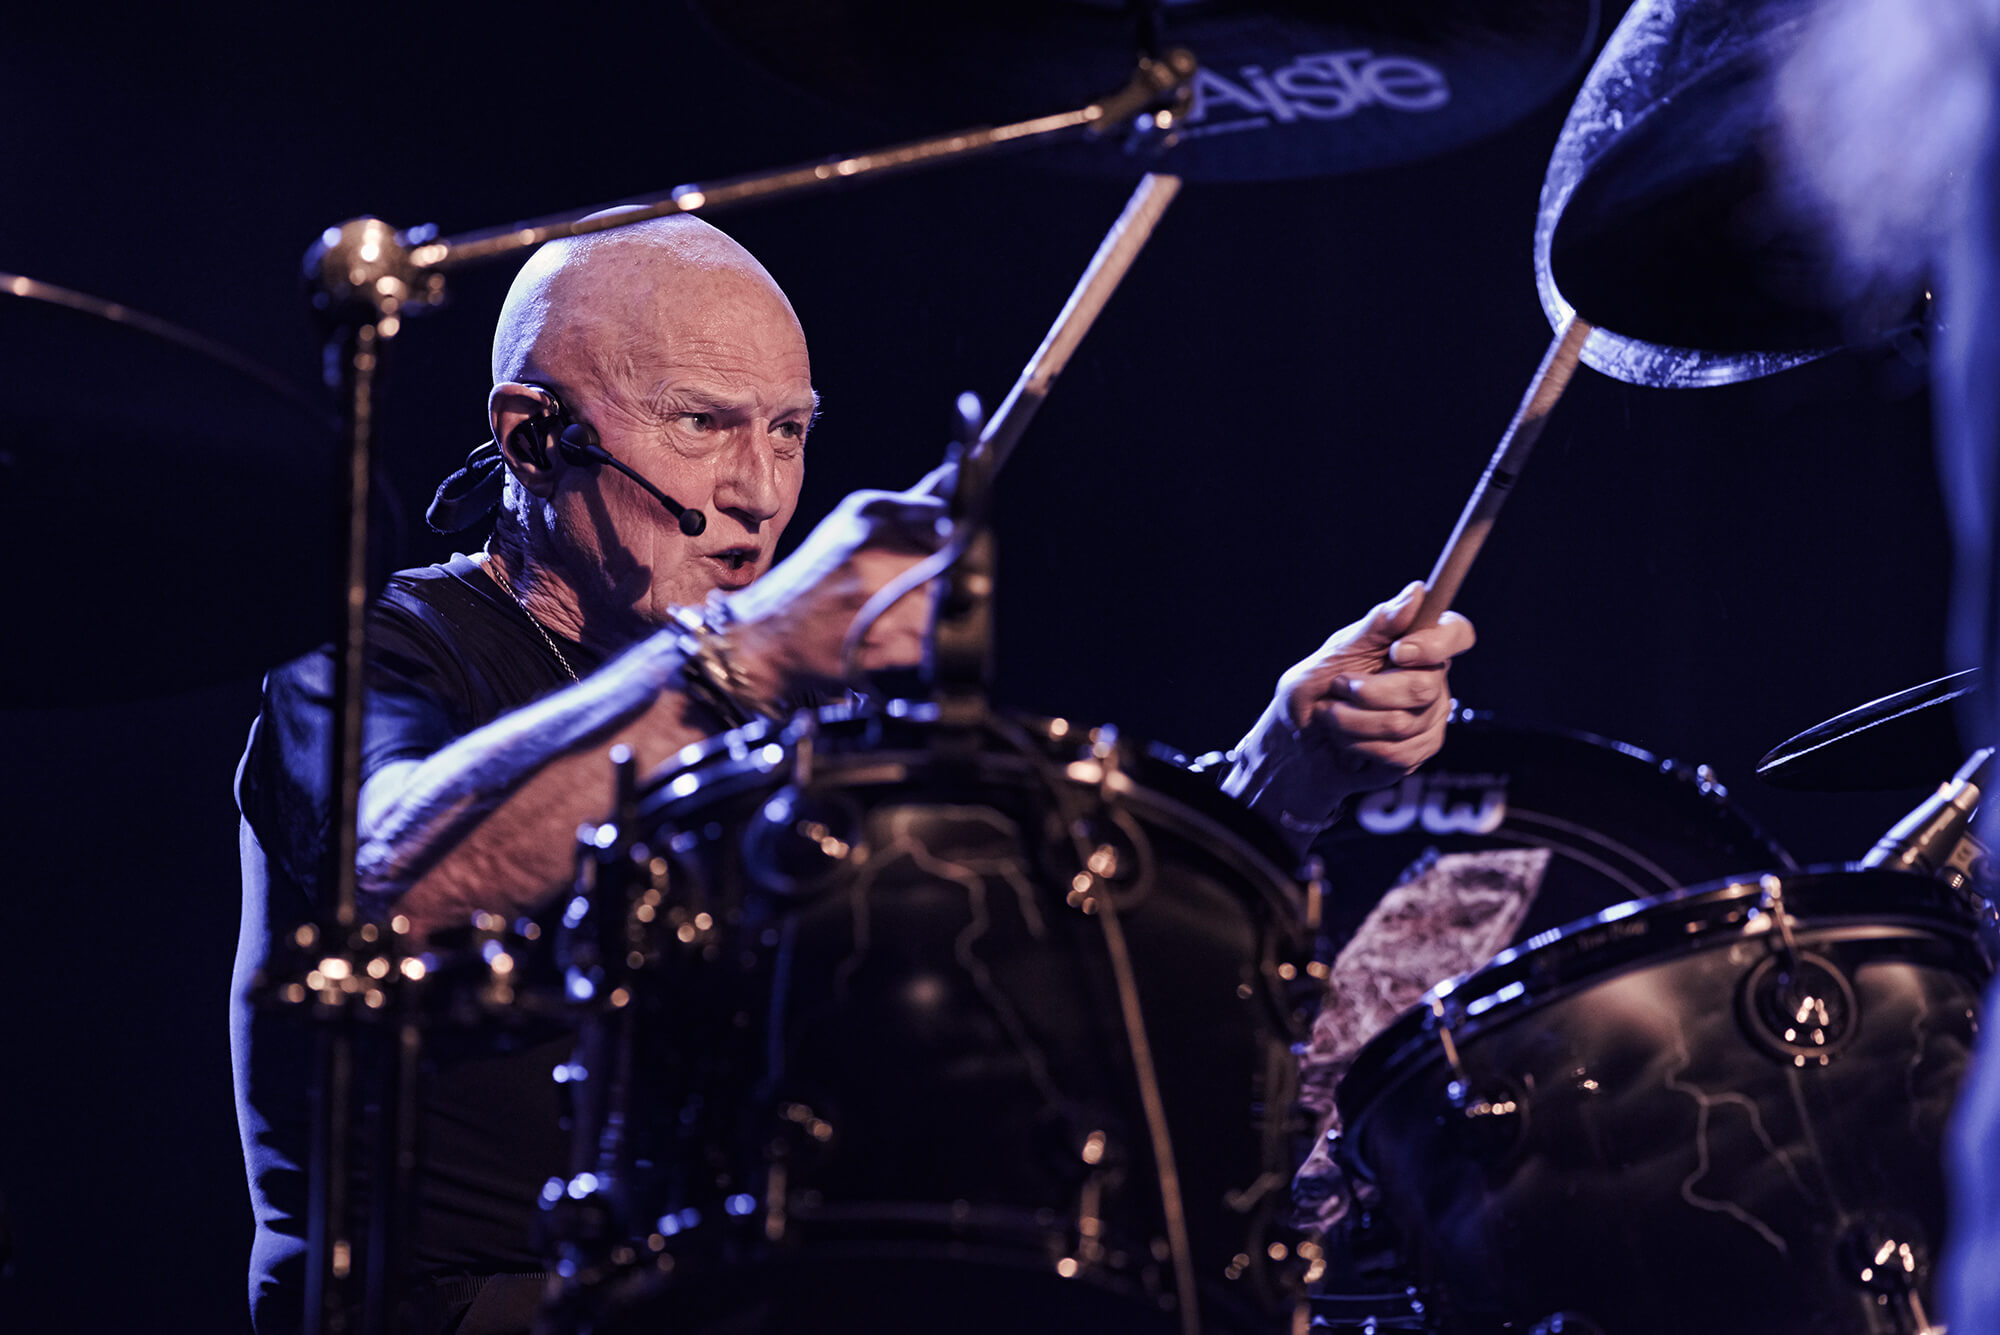 Chris Slade : drums © Régis Lelièvre